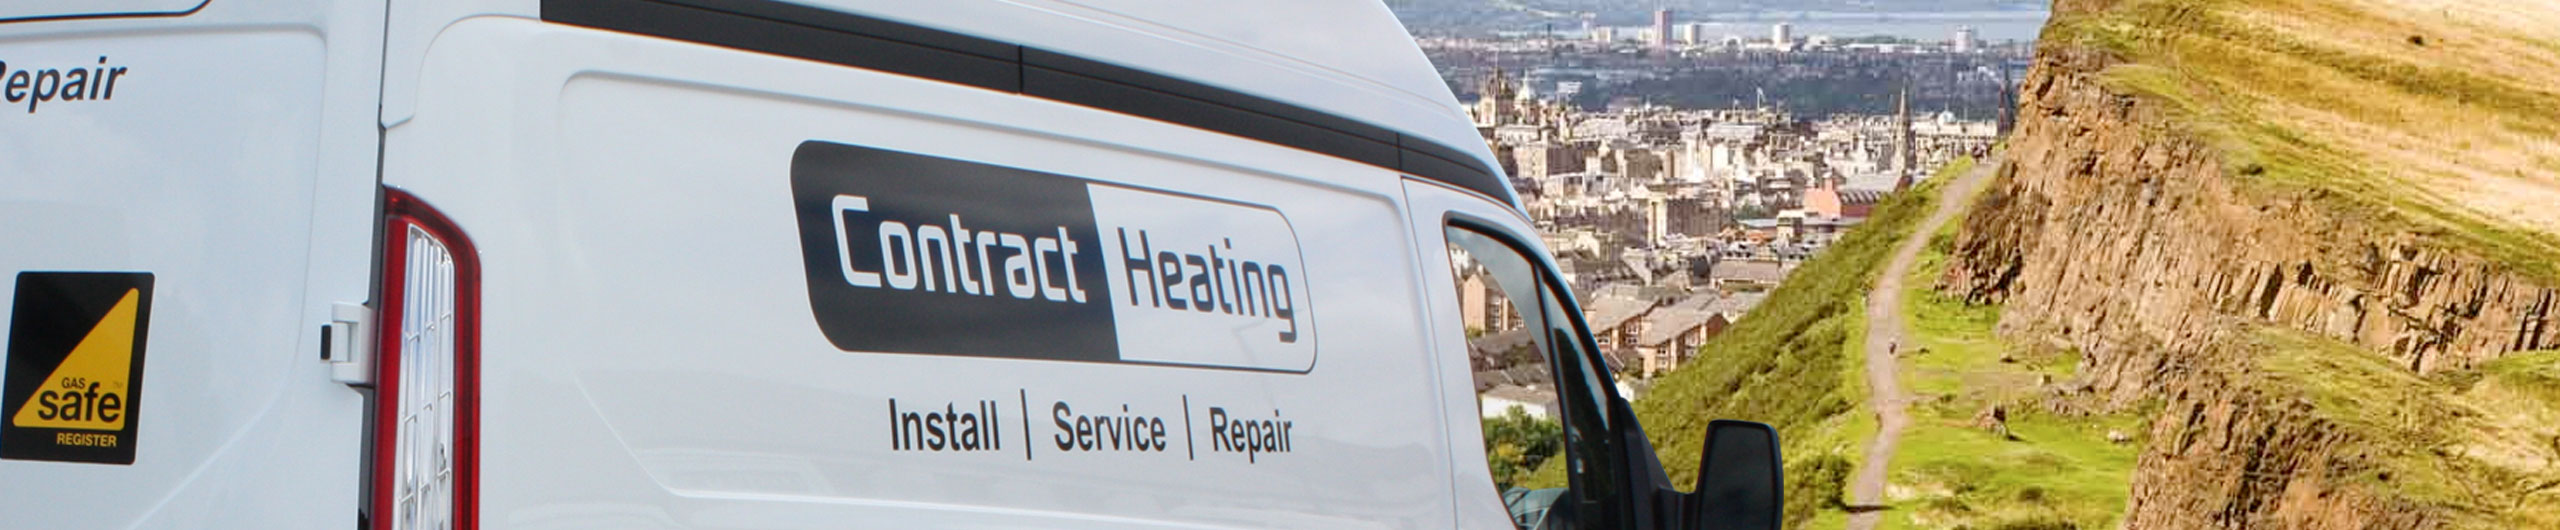 Contract Heating vehicle driving in Edinburgh